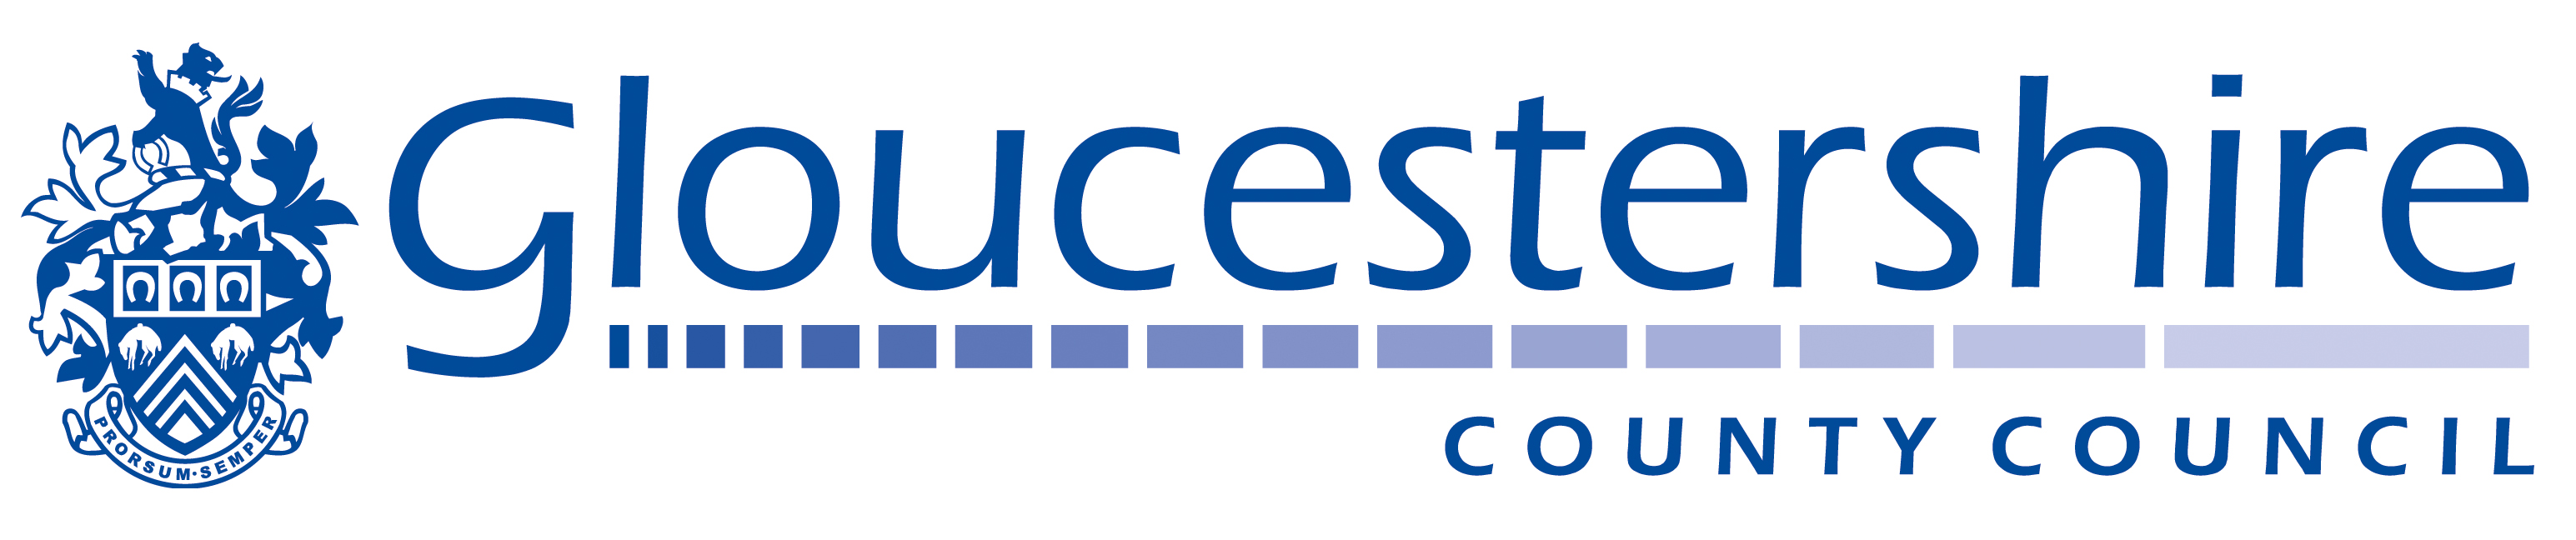 SWIM - Gloucestershire County Council Logo